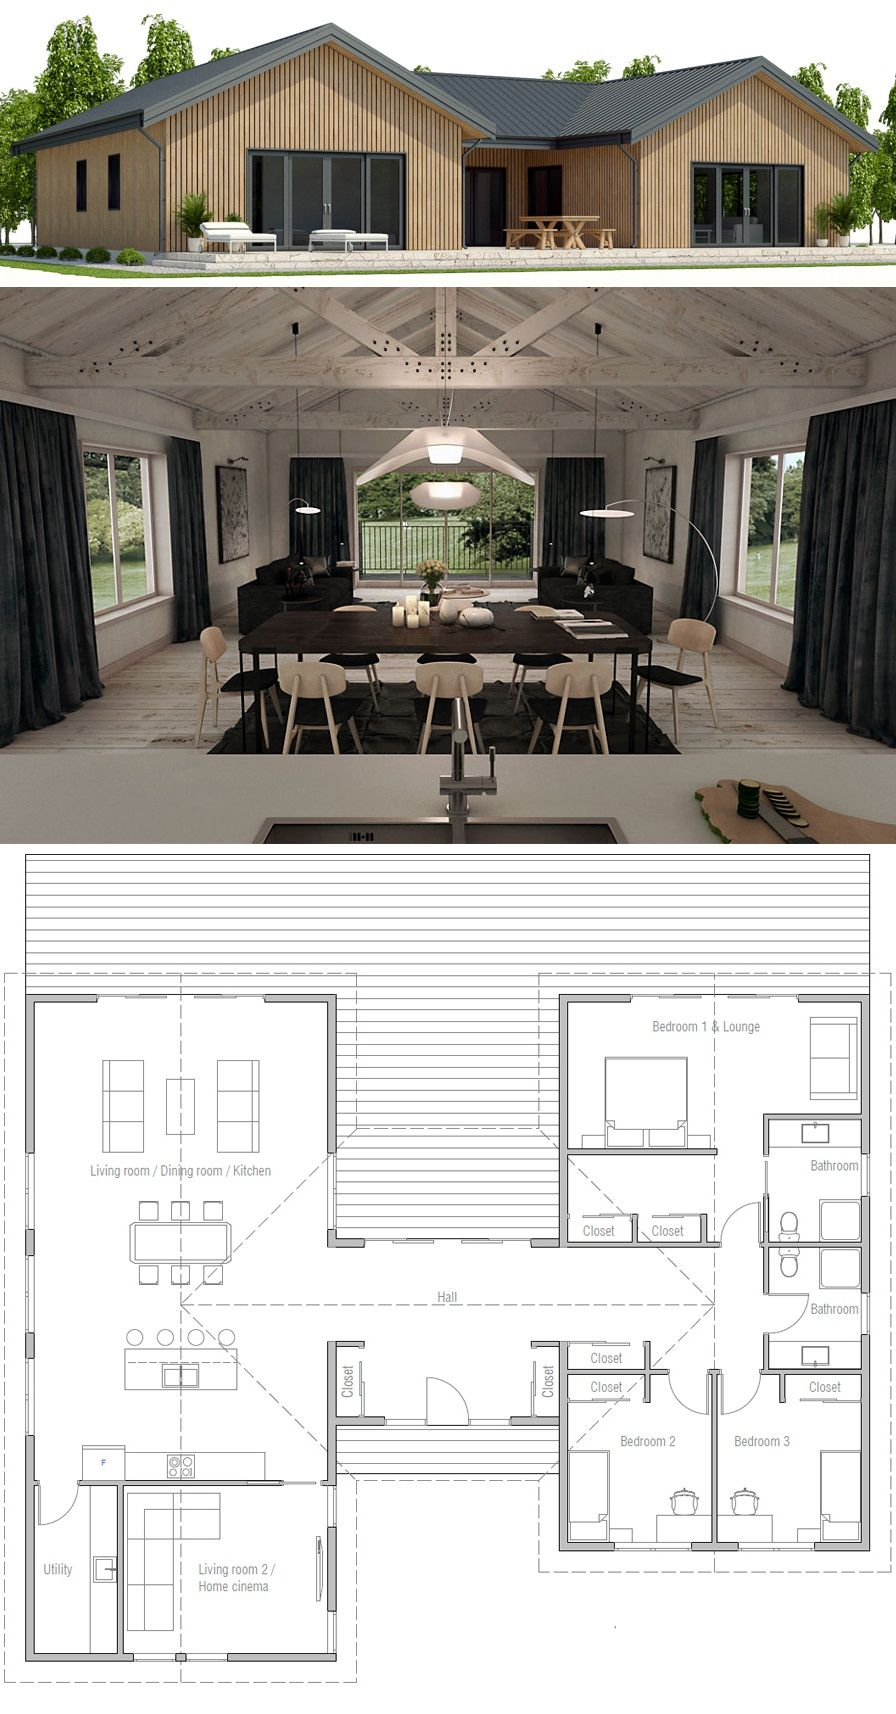 Image Plan Maison Small House Plan Small Home Plans In 2018 Pinterest Maison